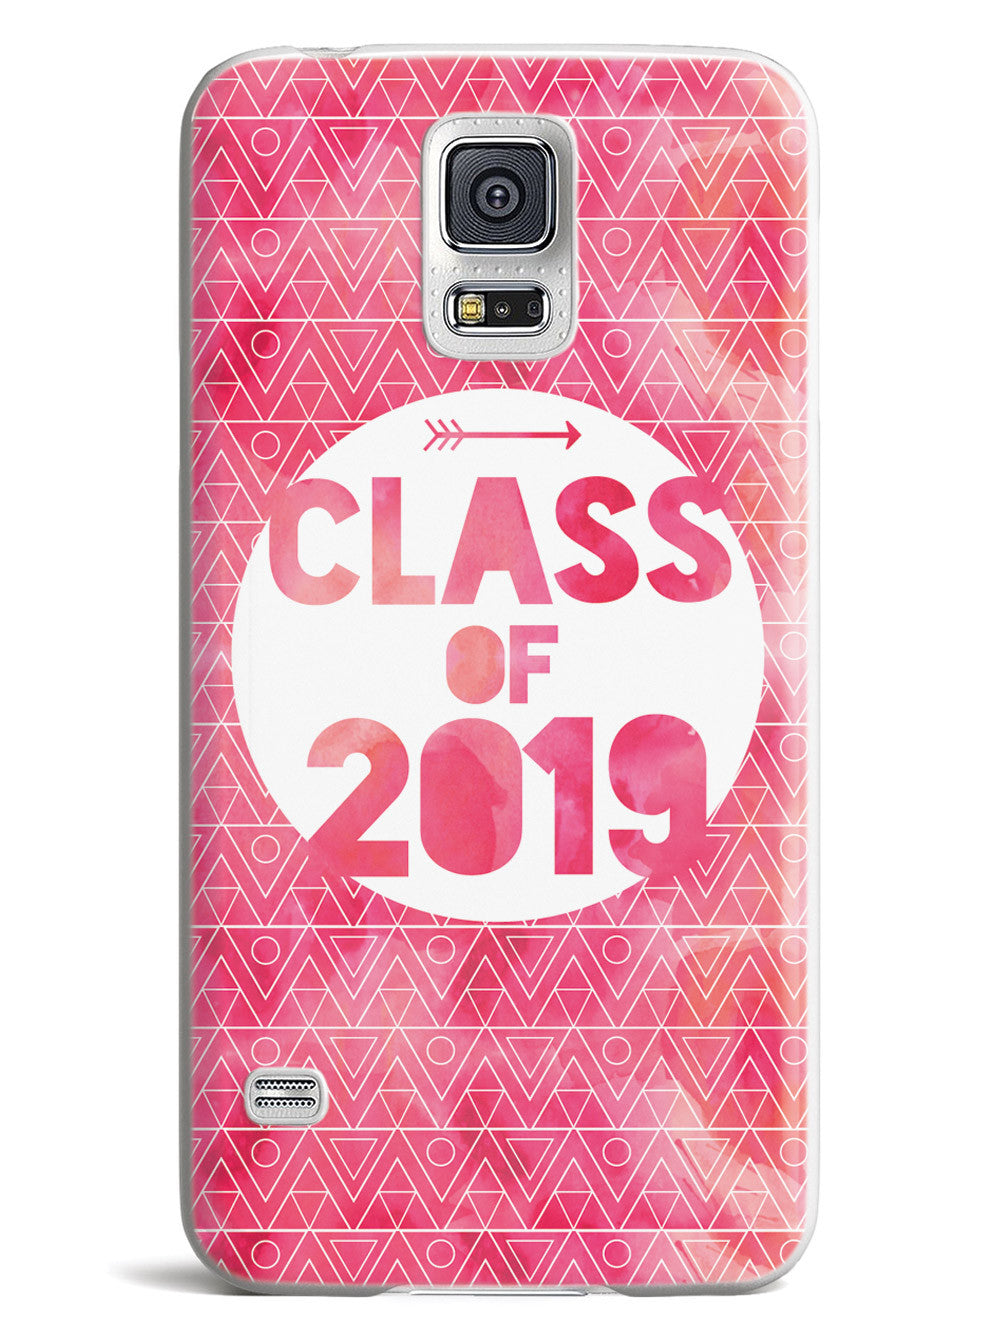 Class of 2019 - Pink Watercolor Case